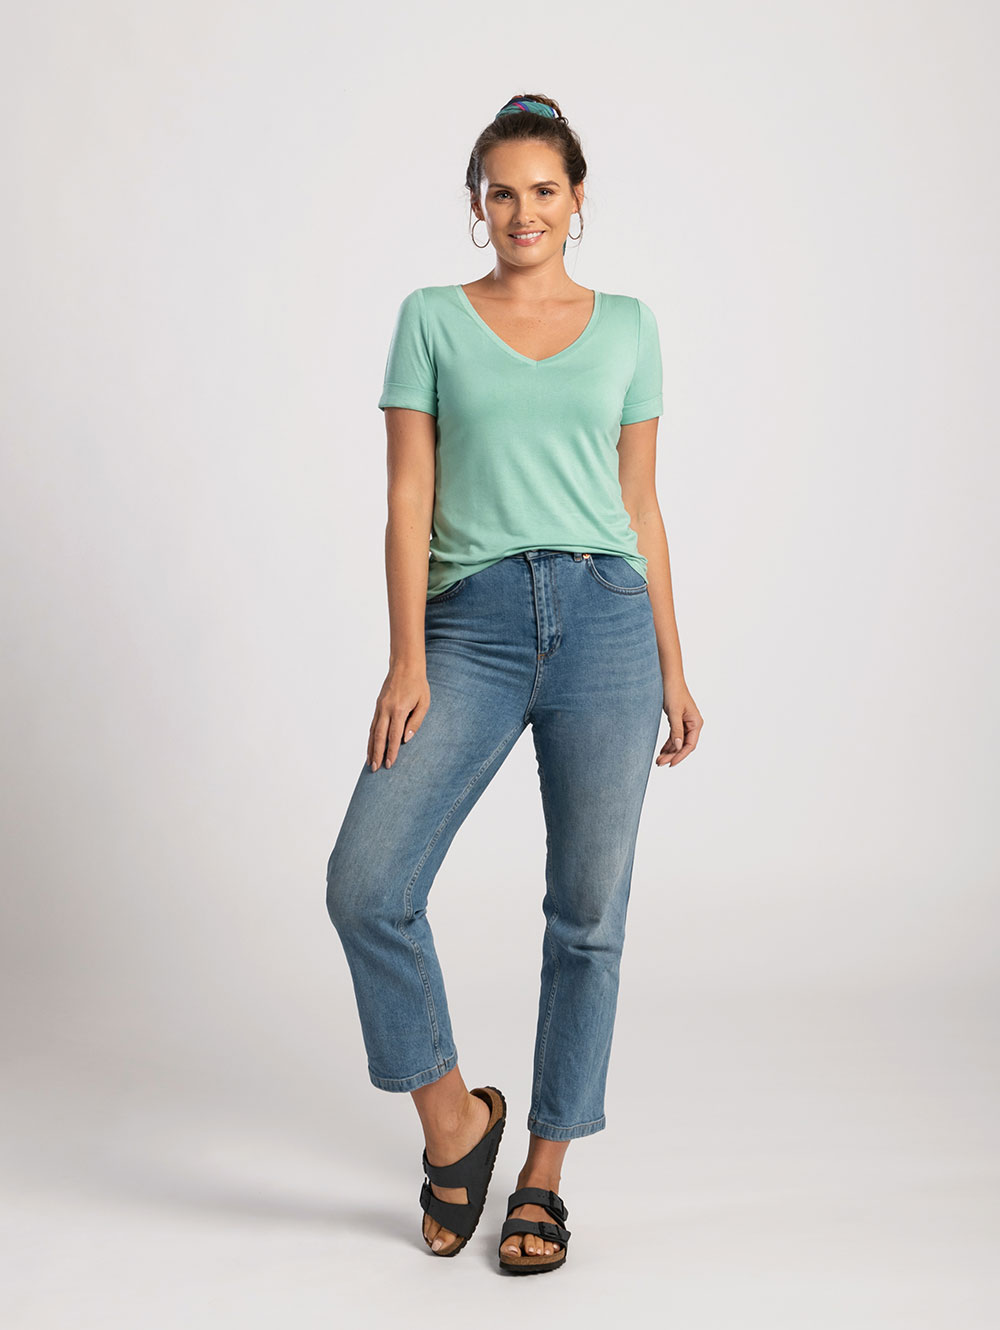 Mint Green V-Neck Tee